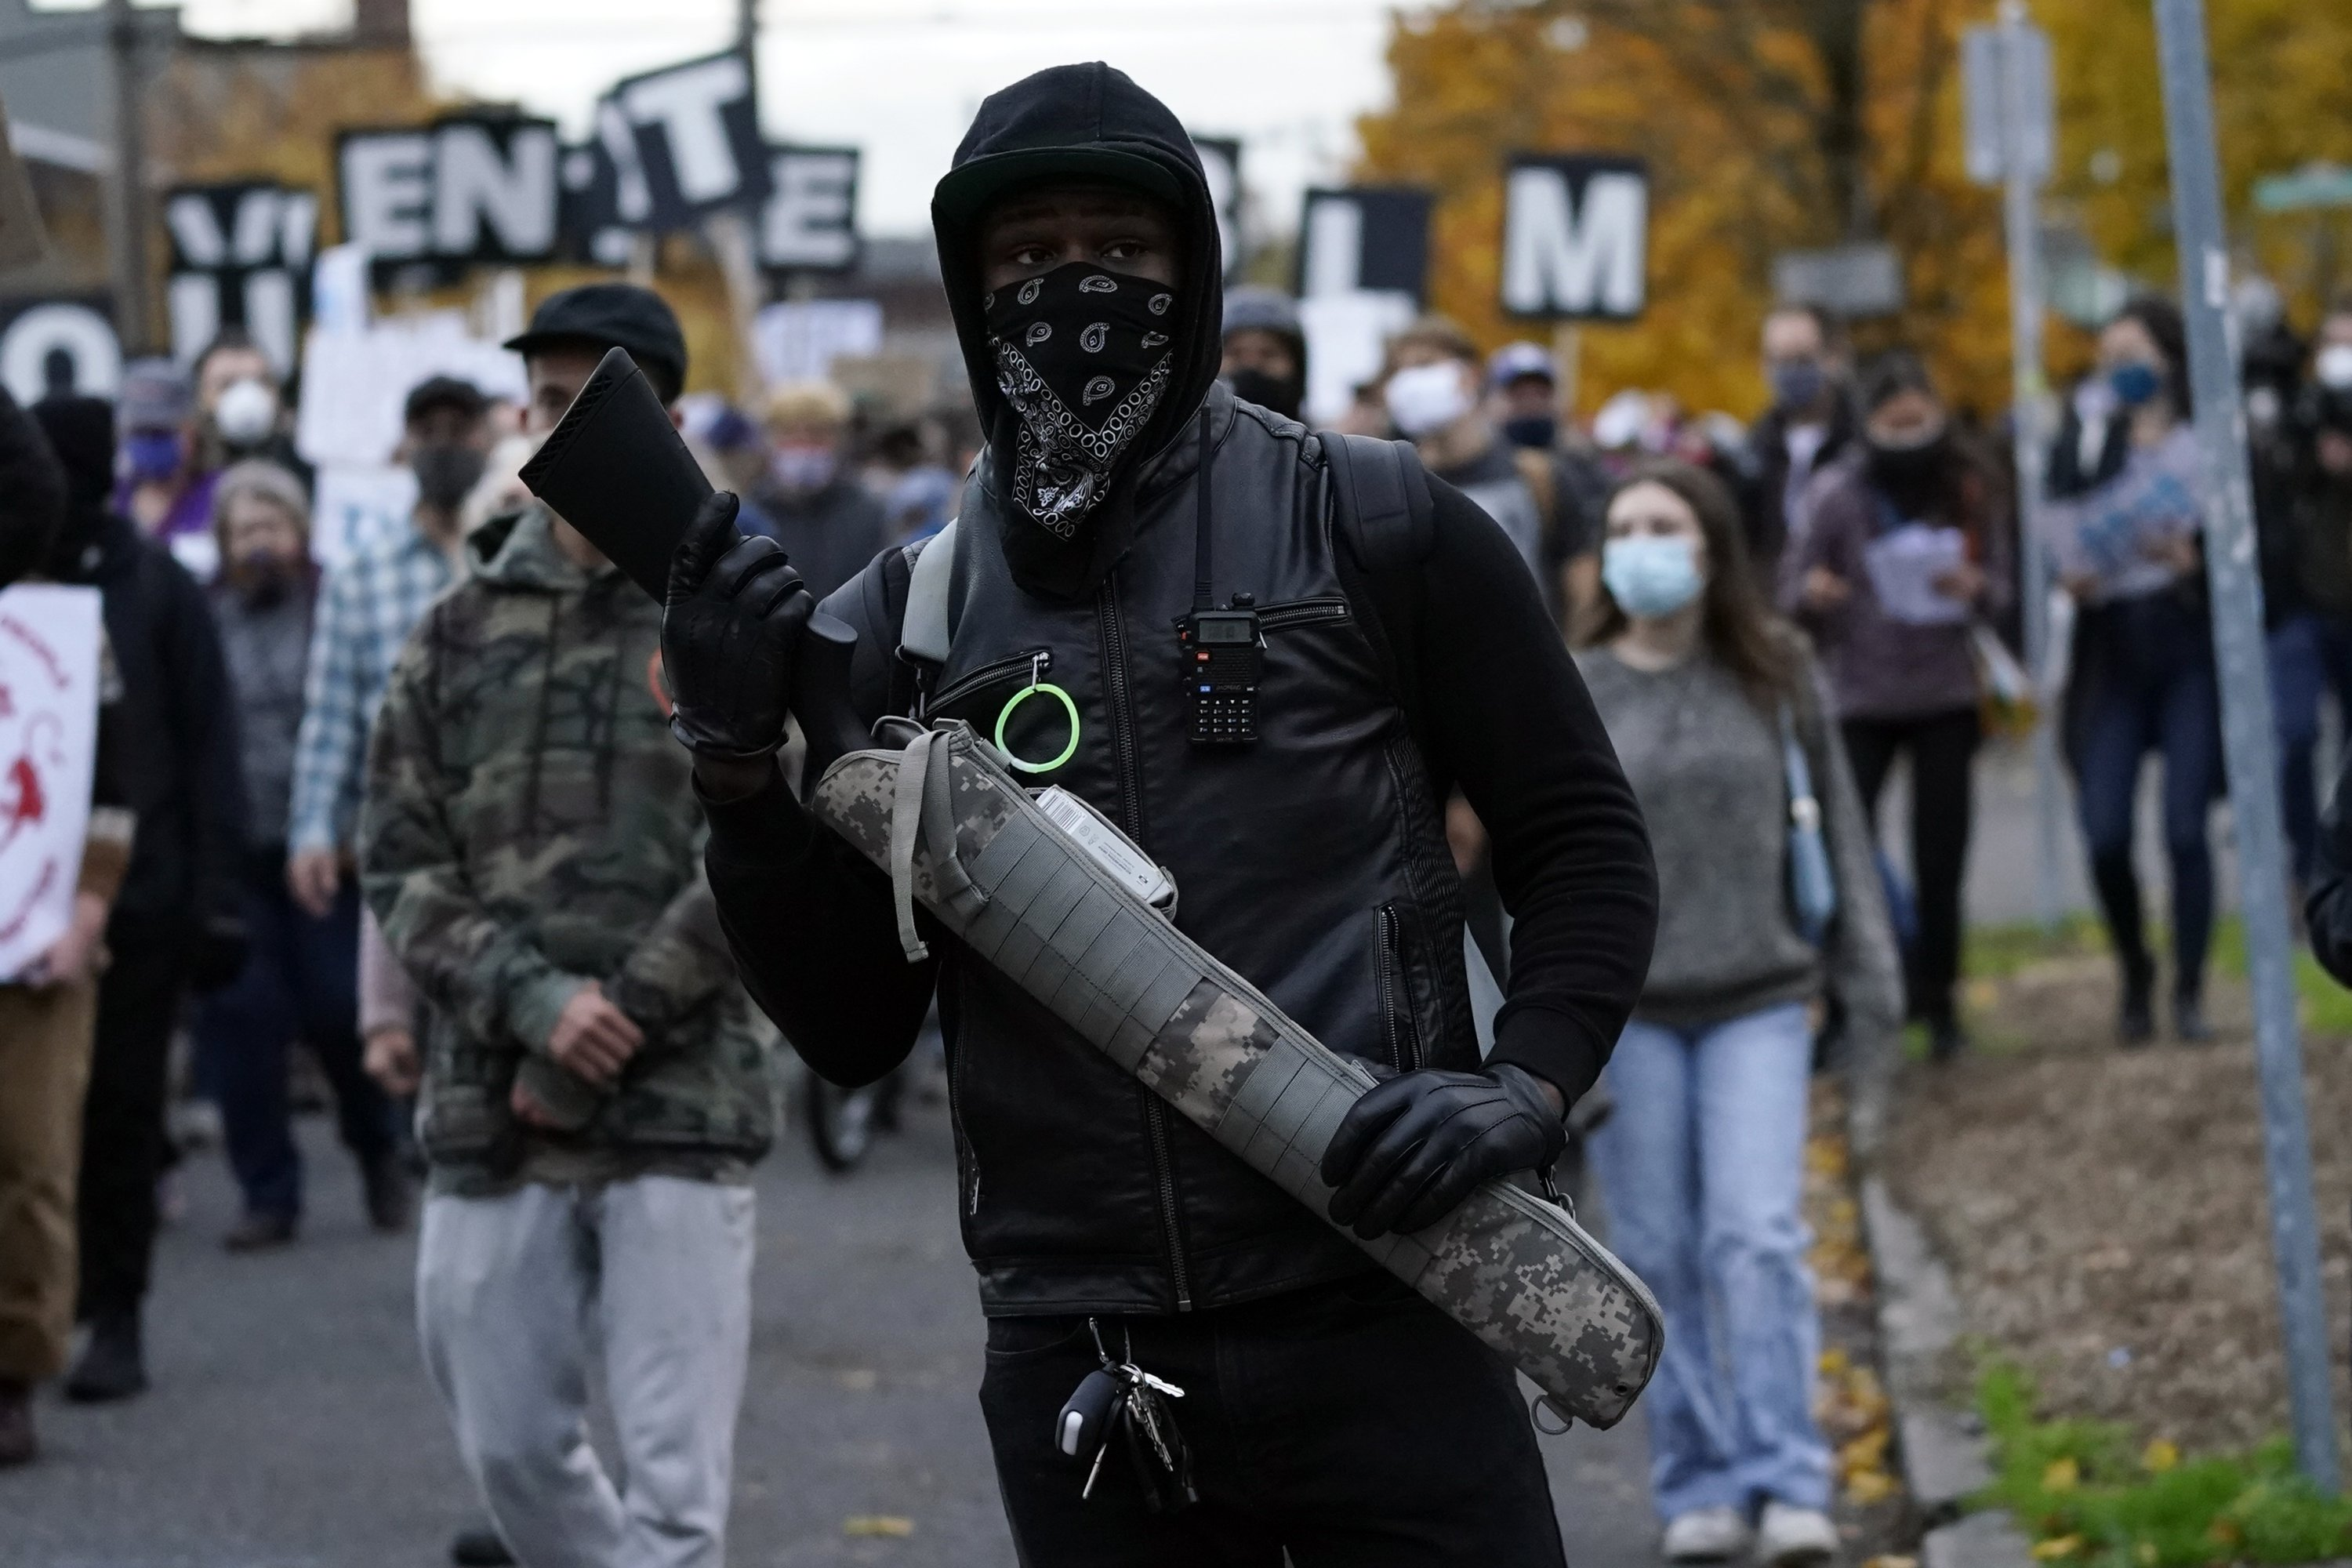 A man carries a gun as he walks during a march in support of vote-counting after the Nov. 3 elections, Portland, Oregon, U.S., Nov. 4, 2020. (AP Photo)